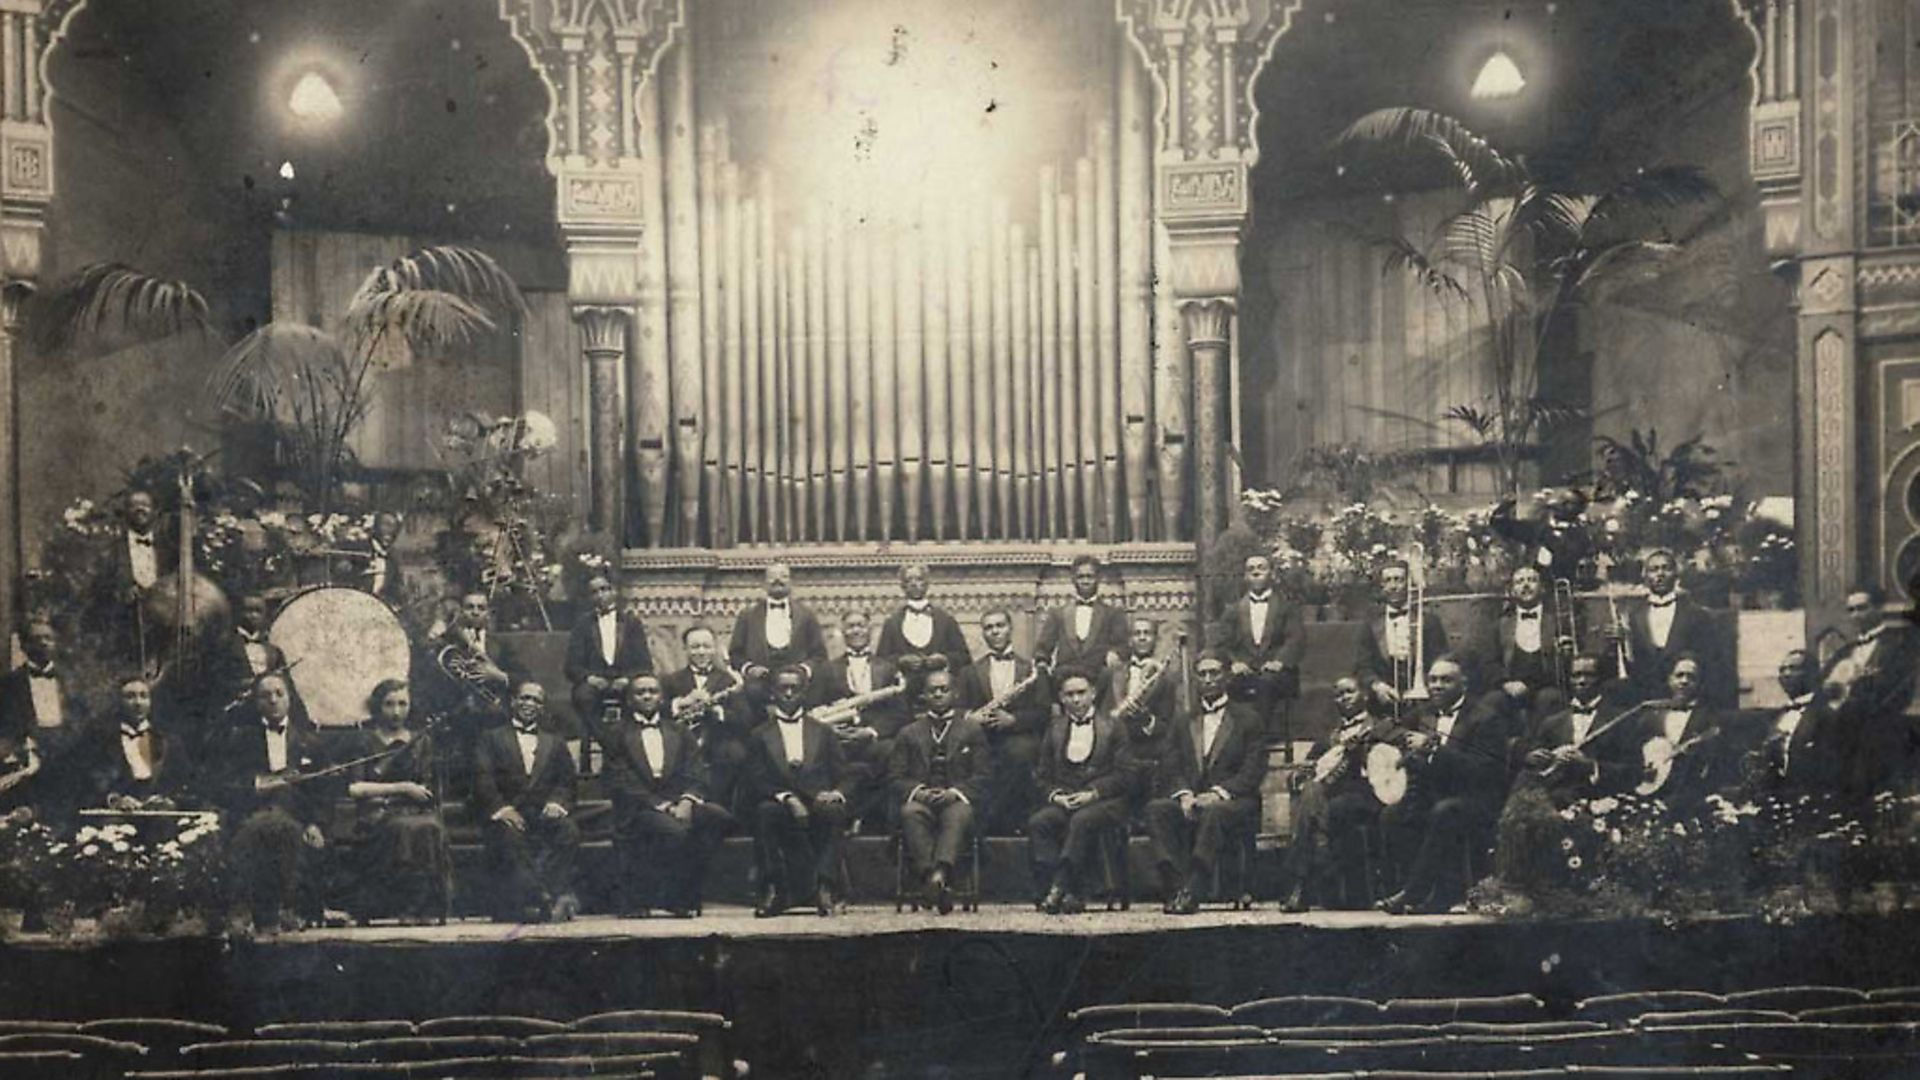 The Southern Syncopated Orchestra from New Orleans took Britain by storm. Photo: Getty Images - Credit: Archant